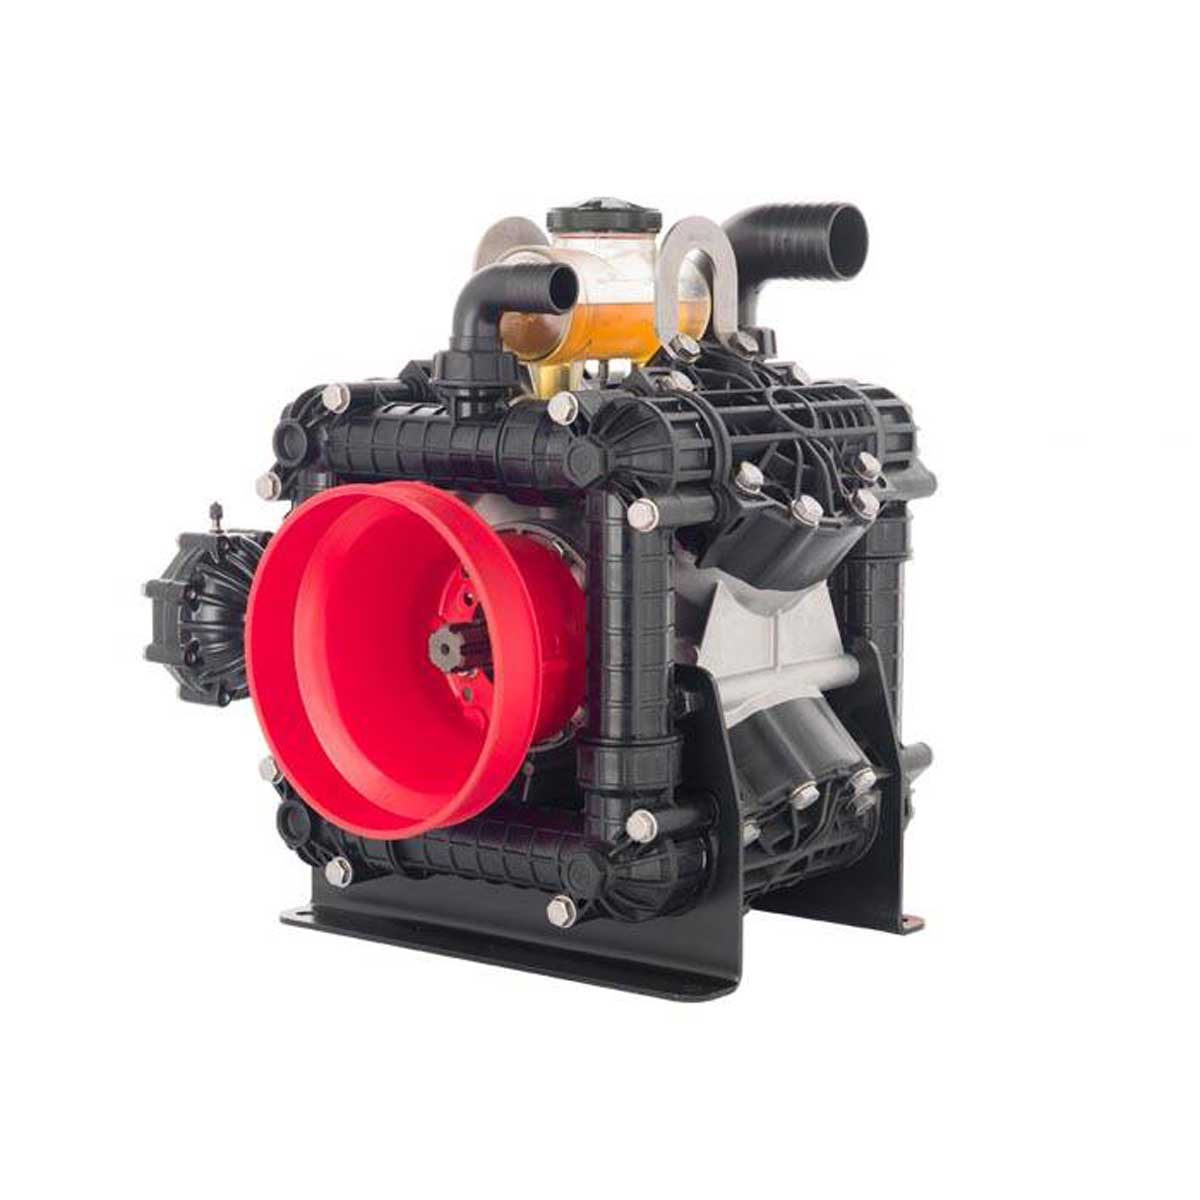 AR330 - AR380 - 550 RPM - Semi-Hydraulic Four-Diaphragm Pump